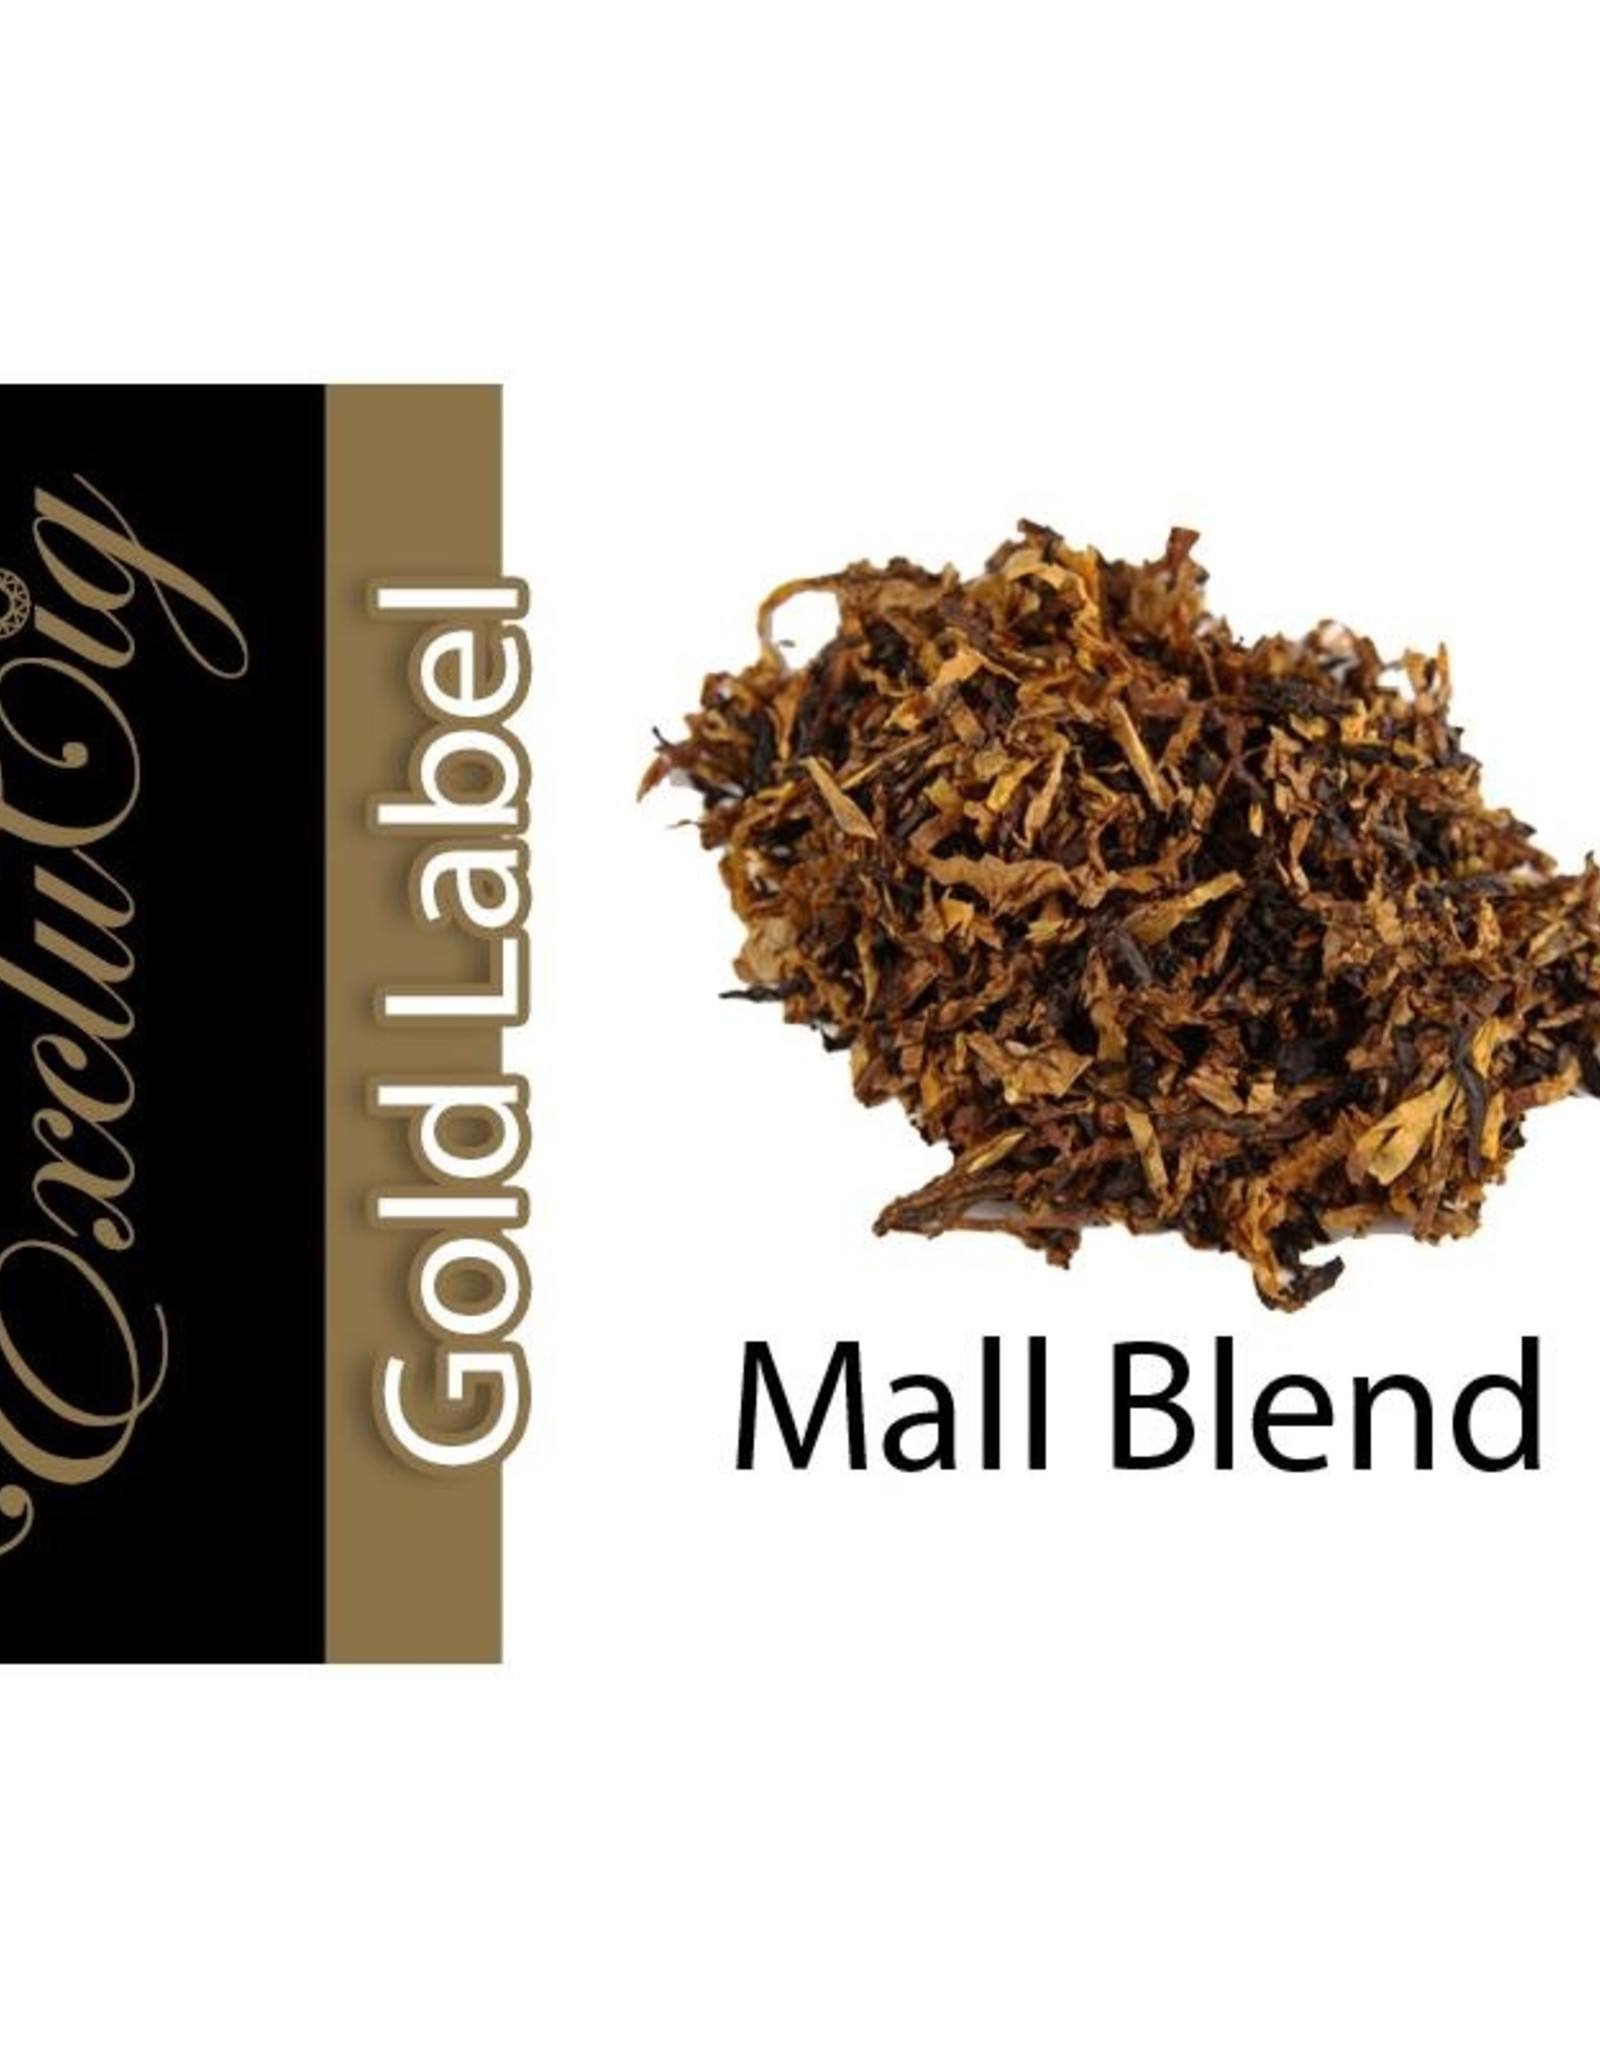 Exclucig Exclucig Gold Label E-liquid Mall Blend 6 mg Nicotine